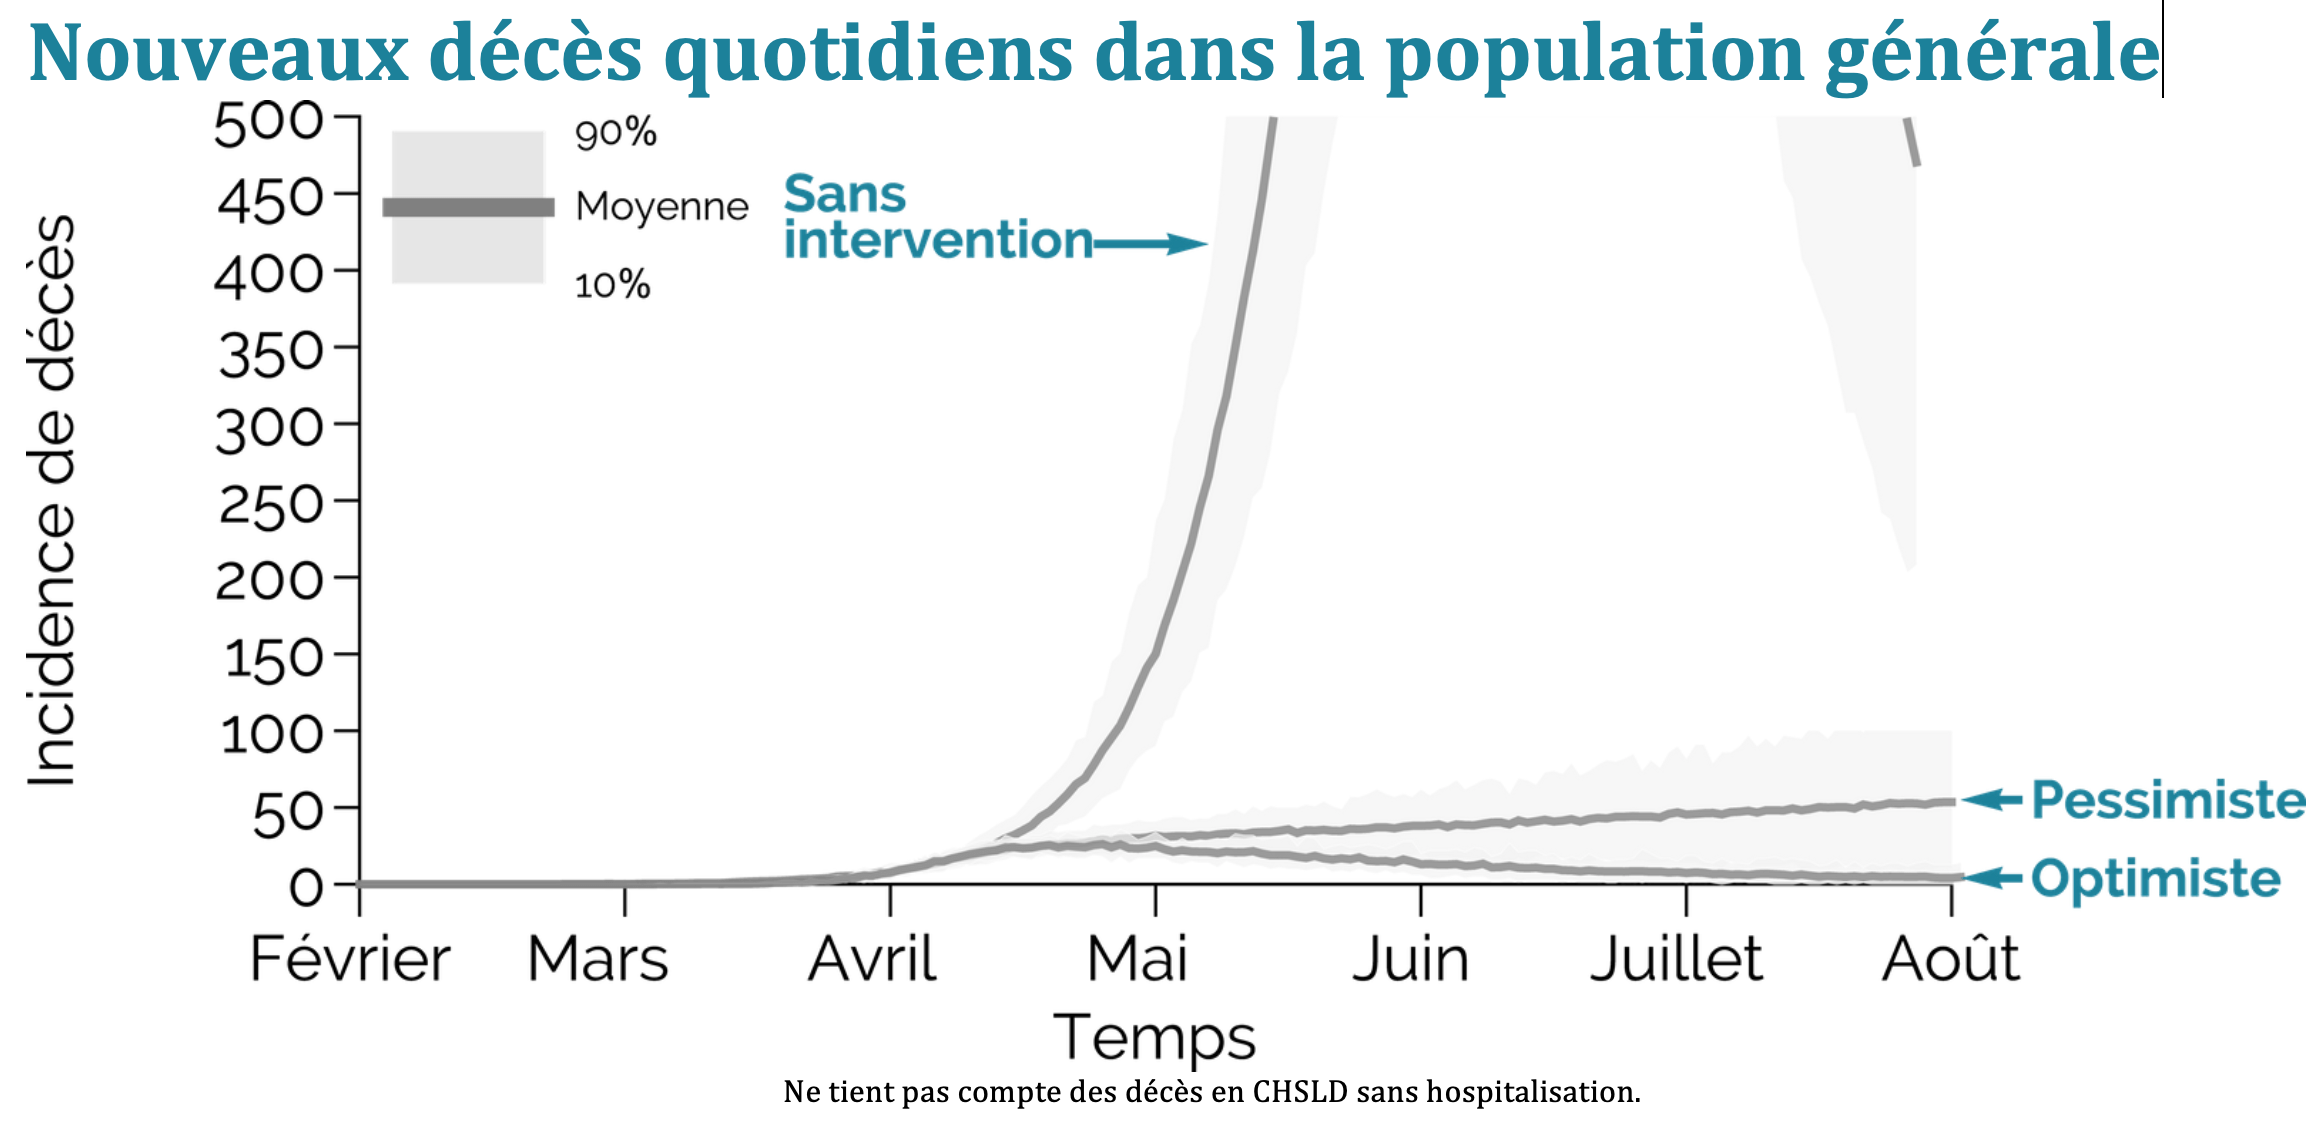 Daily deaths in the population